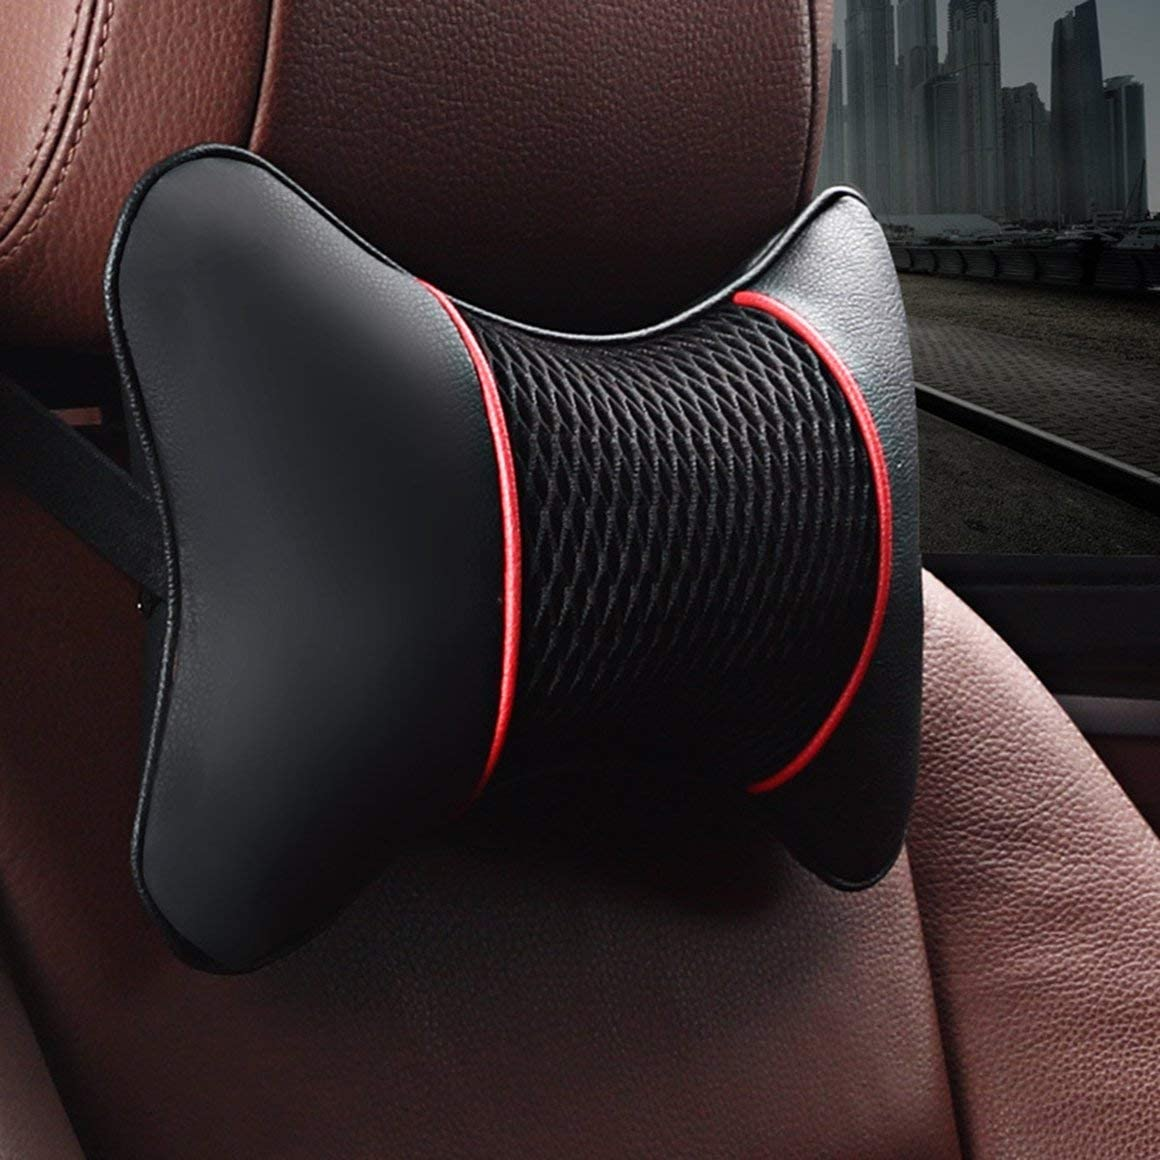 Paperllong/® Leather Car Seat Neck Pillow Head Protector Safety Auto Headrest Support Backrest Cushion Pillows Neck Rest